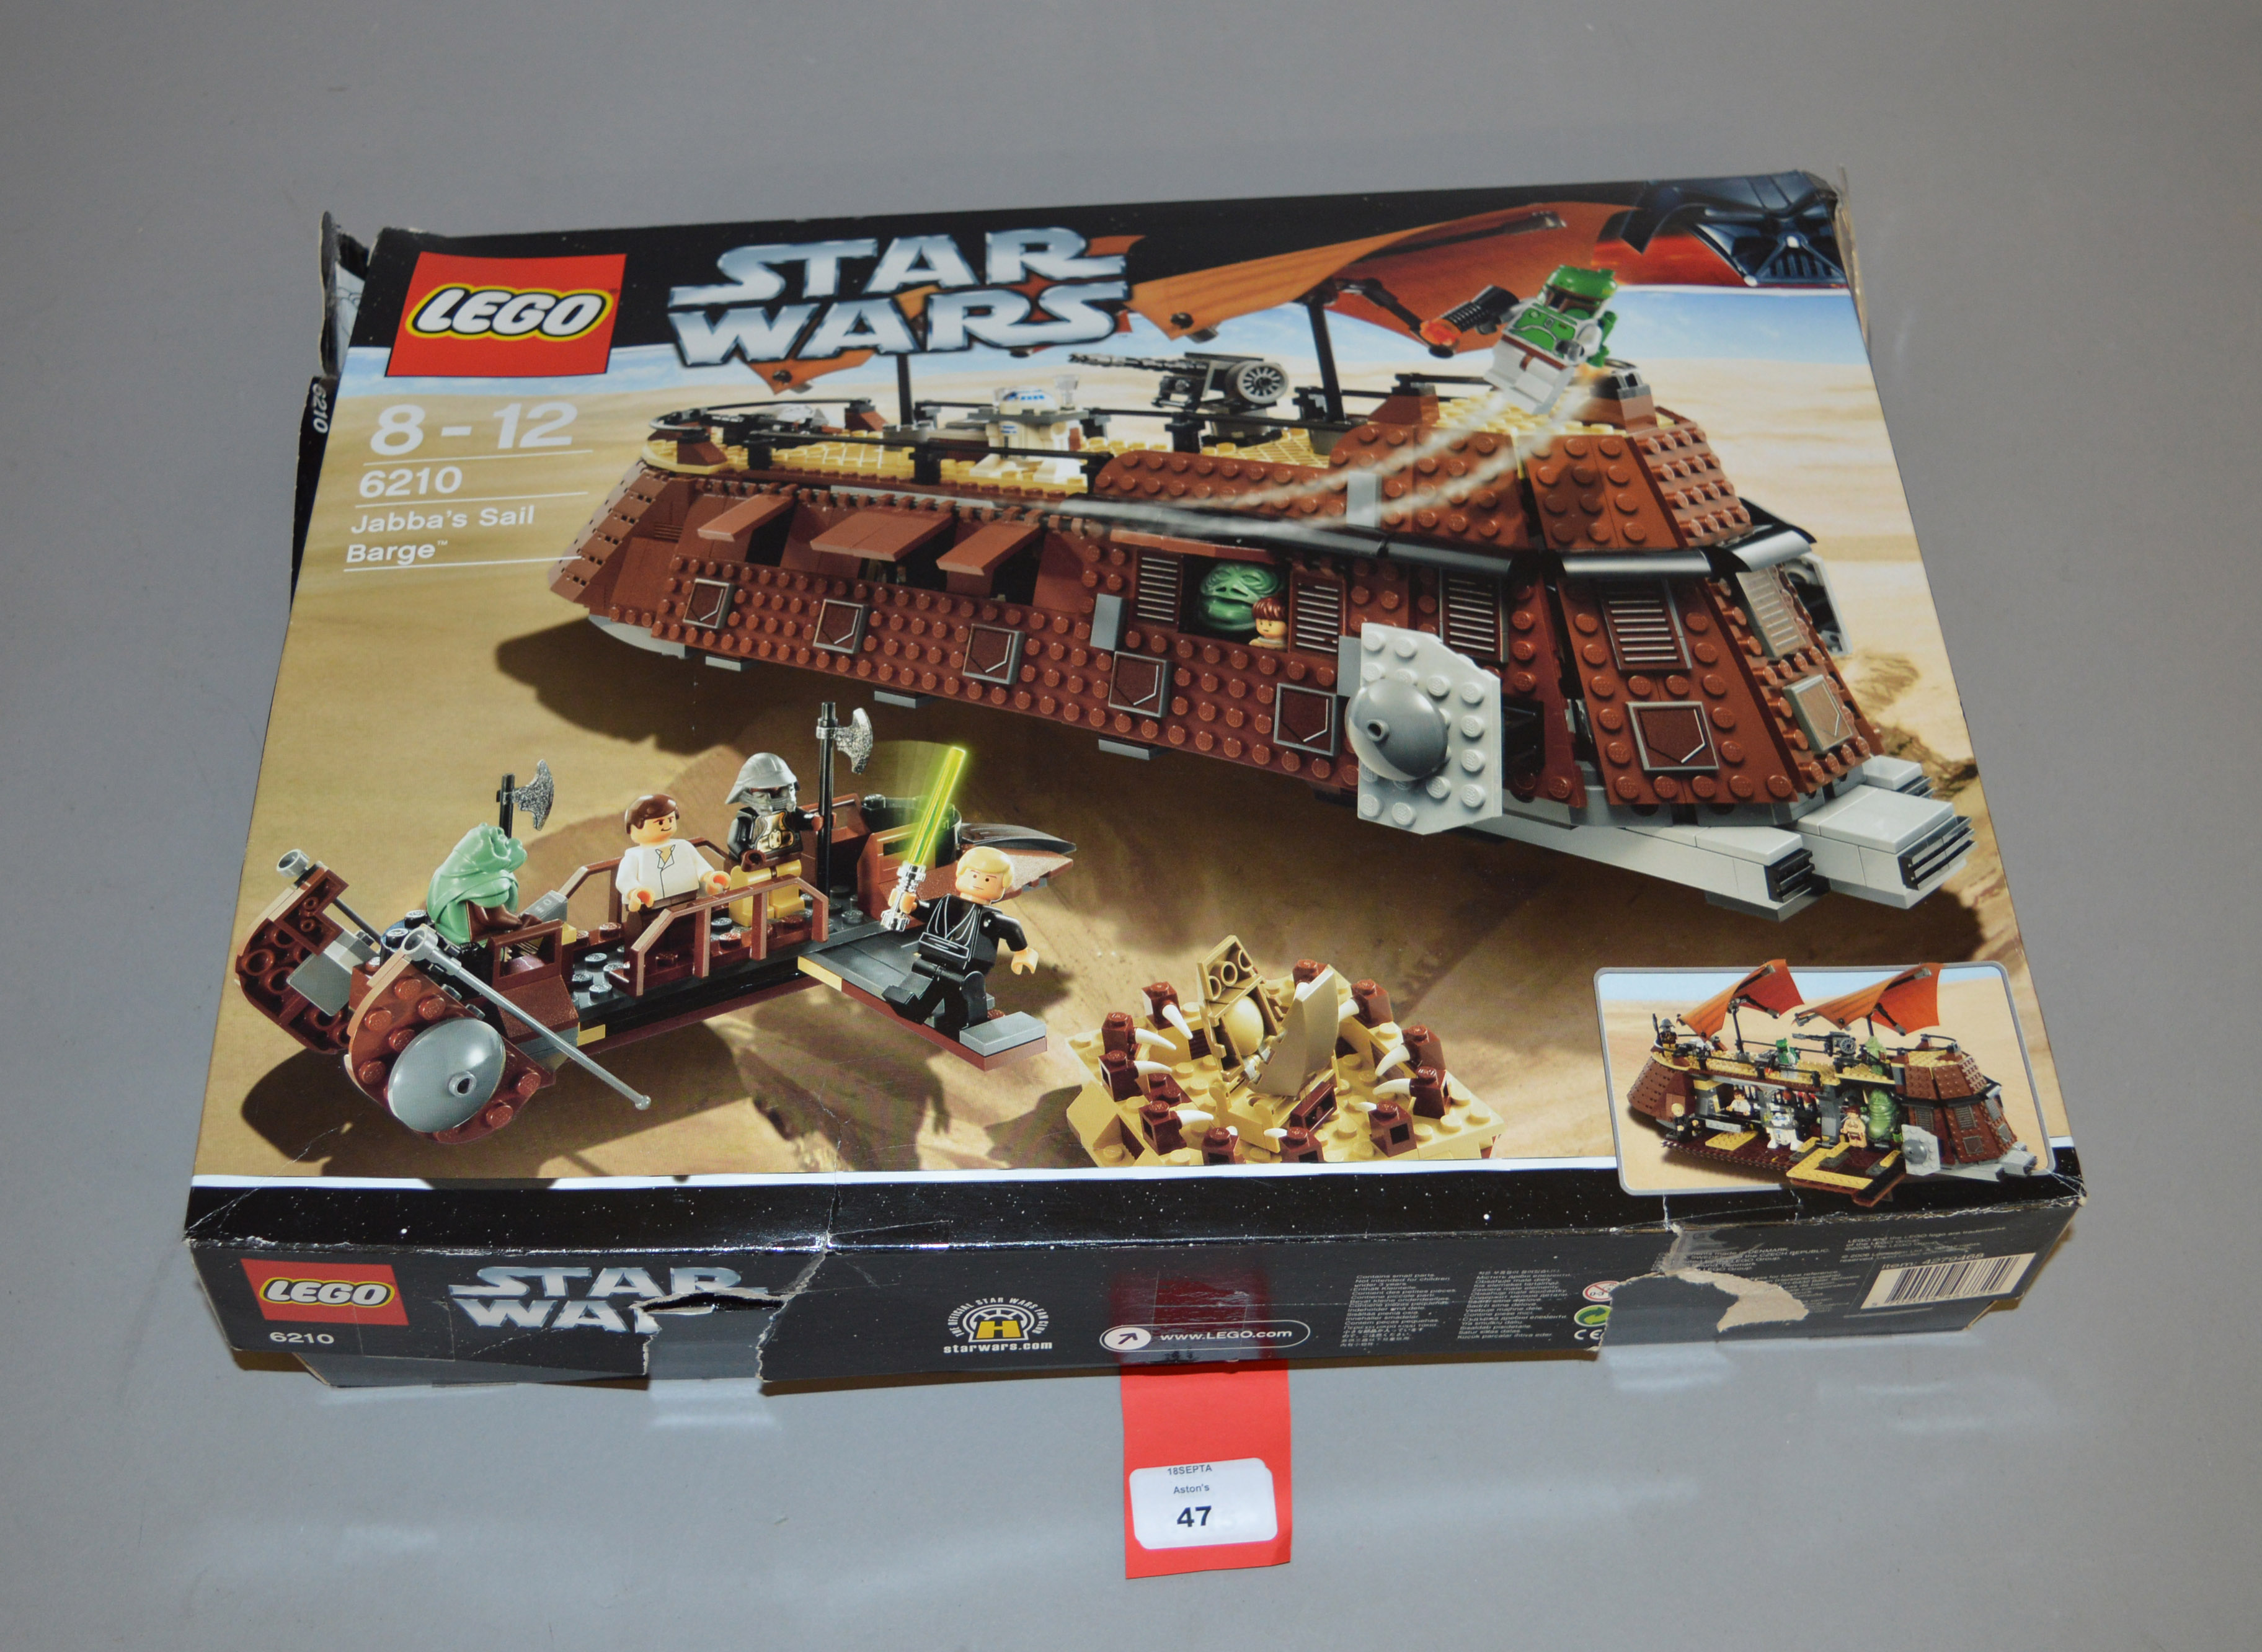 Lot 47 - Lego Star Wars 6210 Jabba's Sail Barge. In F-G box, not checked for completeness.